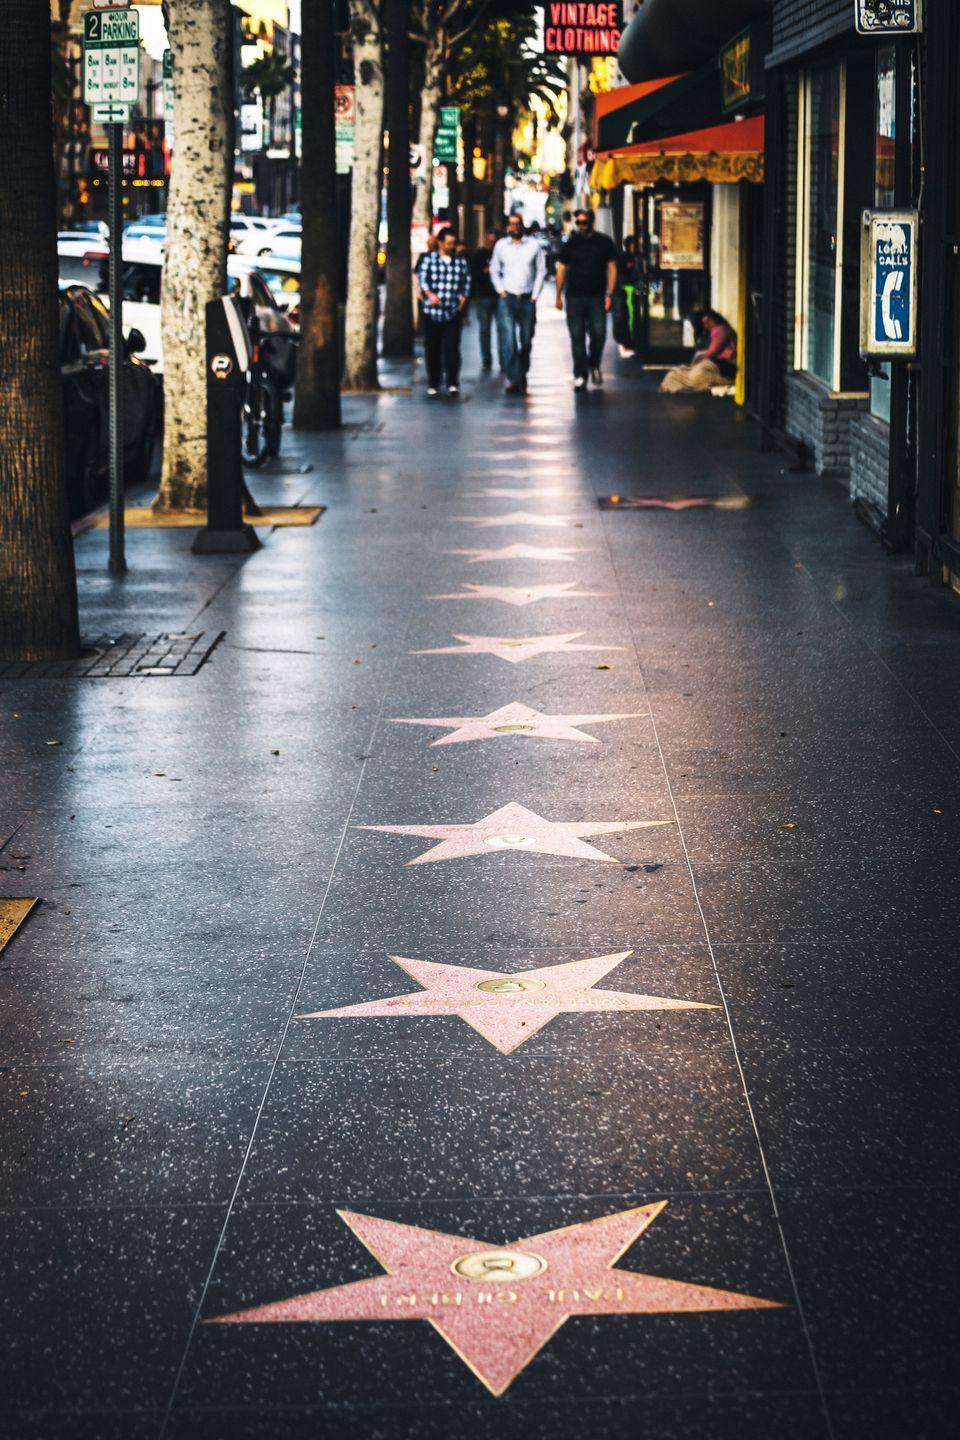 <p>Even though the Hollywood Walk of Fame began much earlier, it wasn't inducted as a Los Angeles Historical and Culture Moment until July 5, 1978. Today, there are over 2,400 names on the terrazzo sidewalk along Hollywood Boulevard. </p>